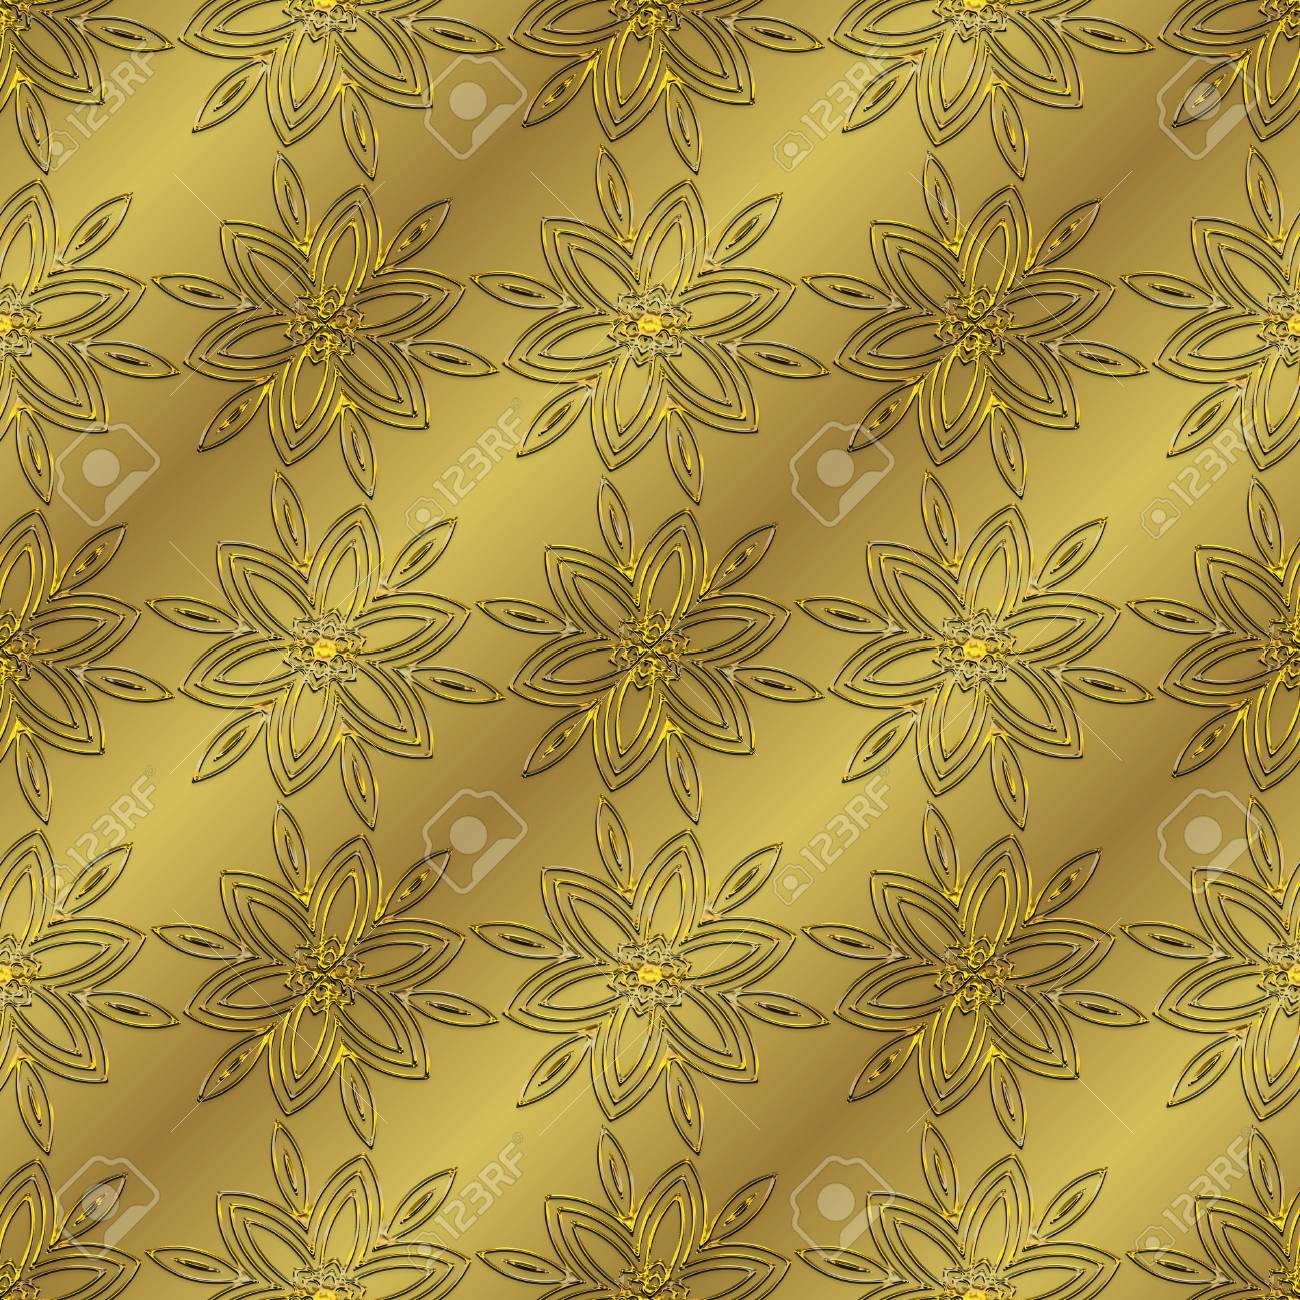 Gold Metallic Regular Seamless Pattern Metal Foil With Pattern